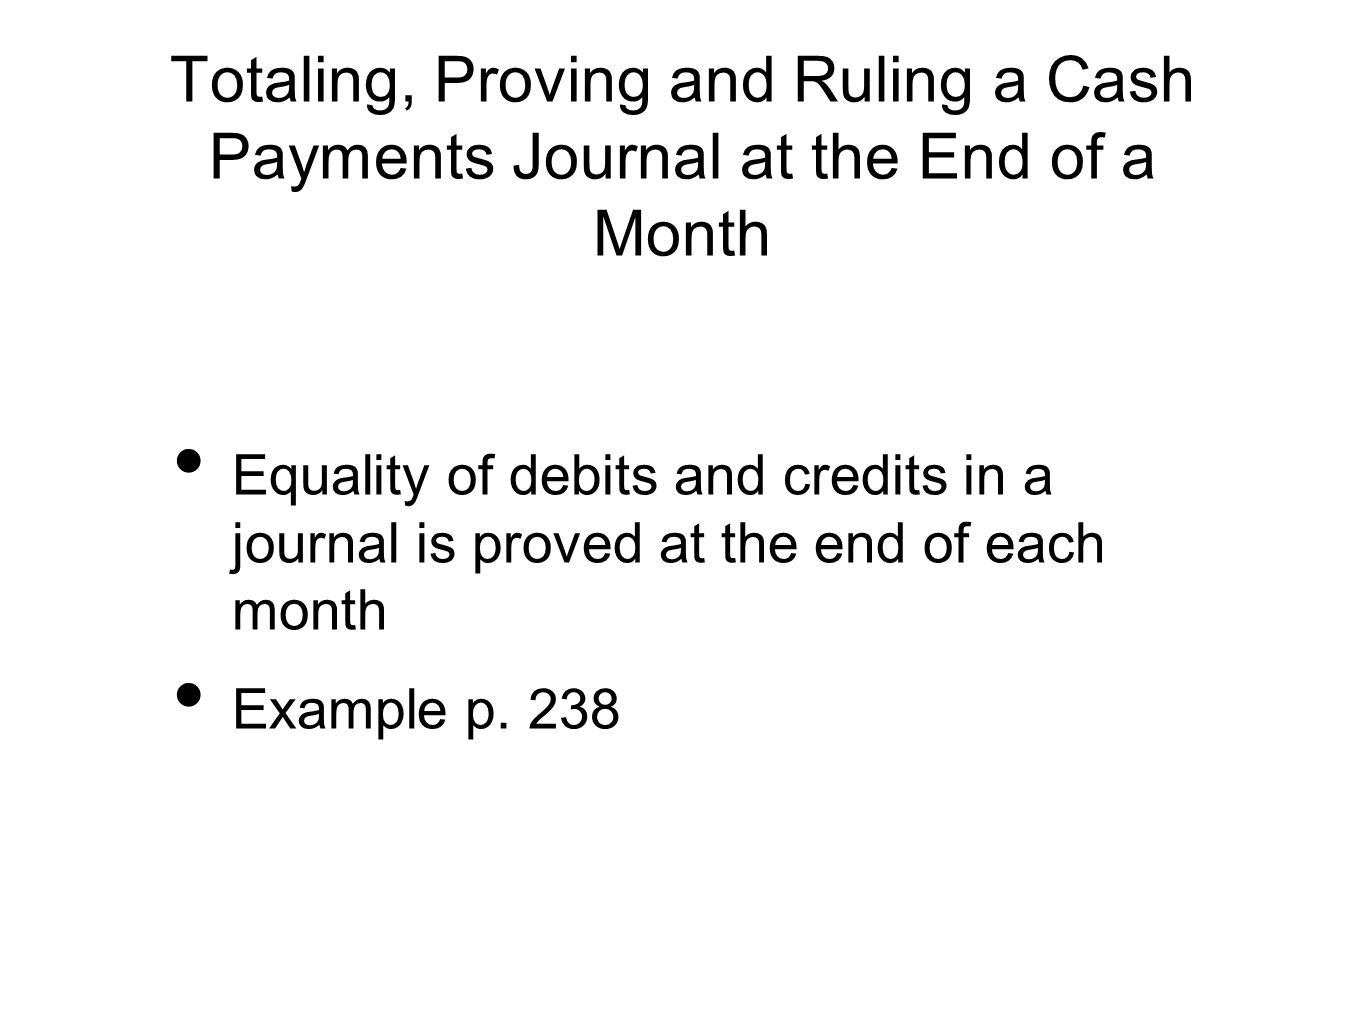 Totaling, Proving and Ruling a Cash Payments Journal at the End of a Month